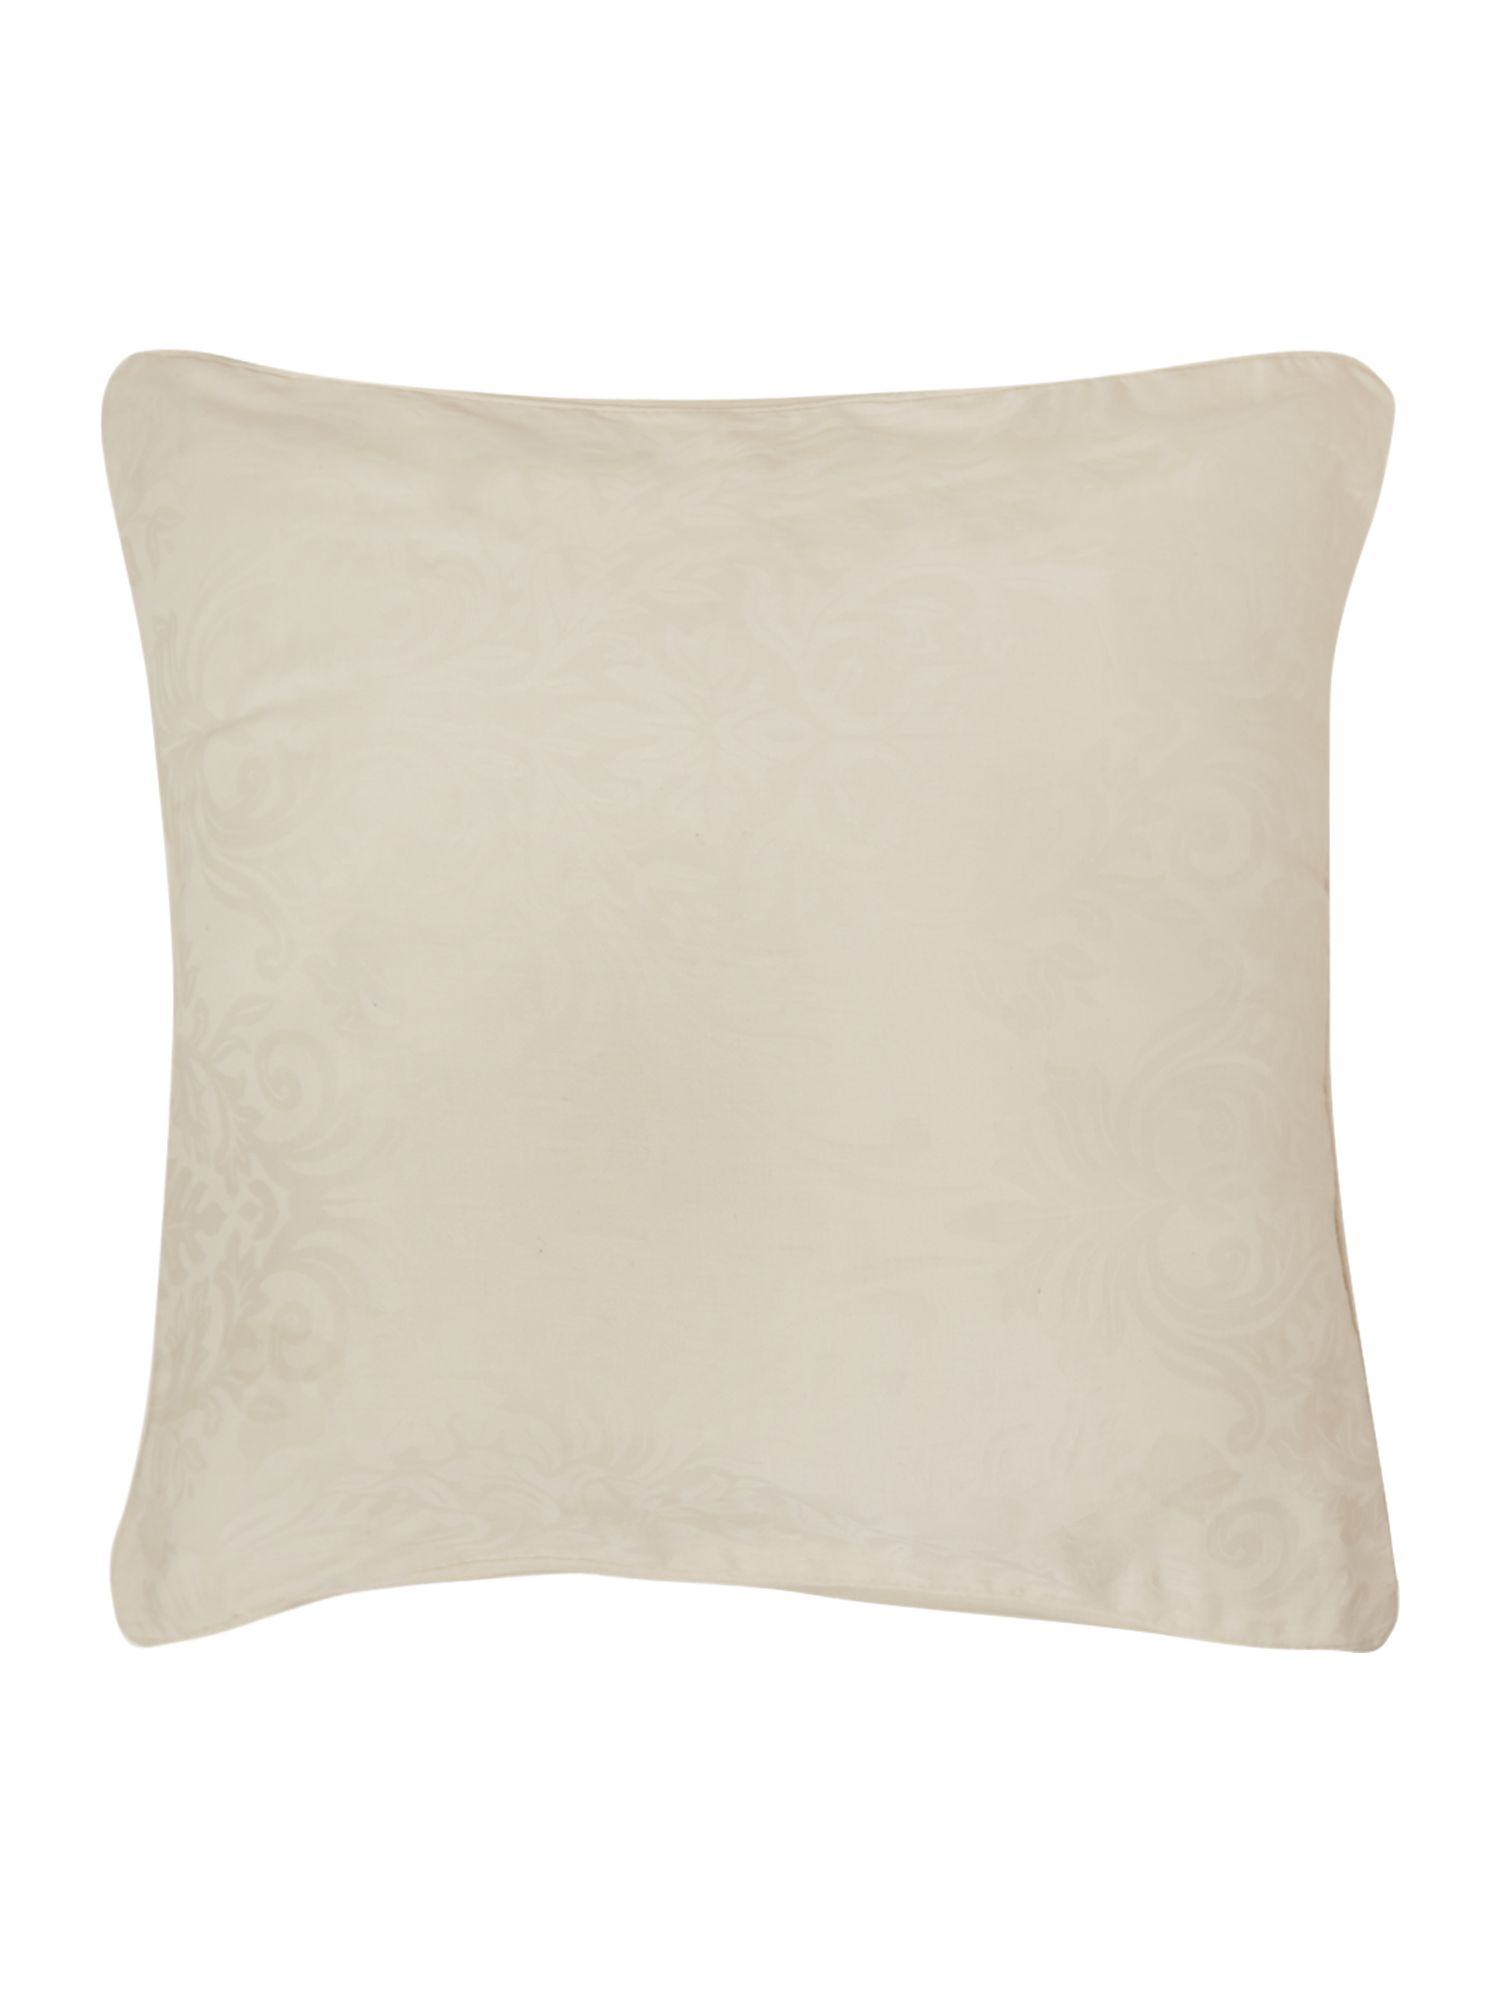 Lhc damask pair of filled cushions cream